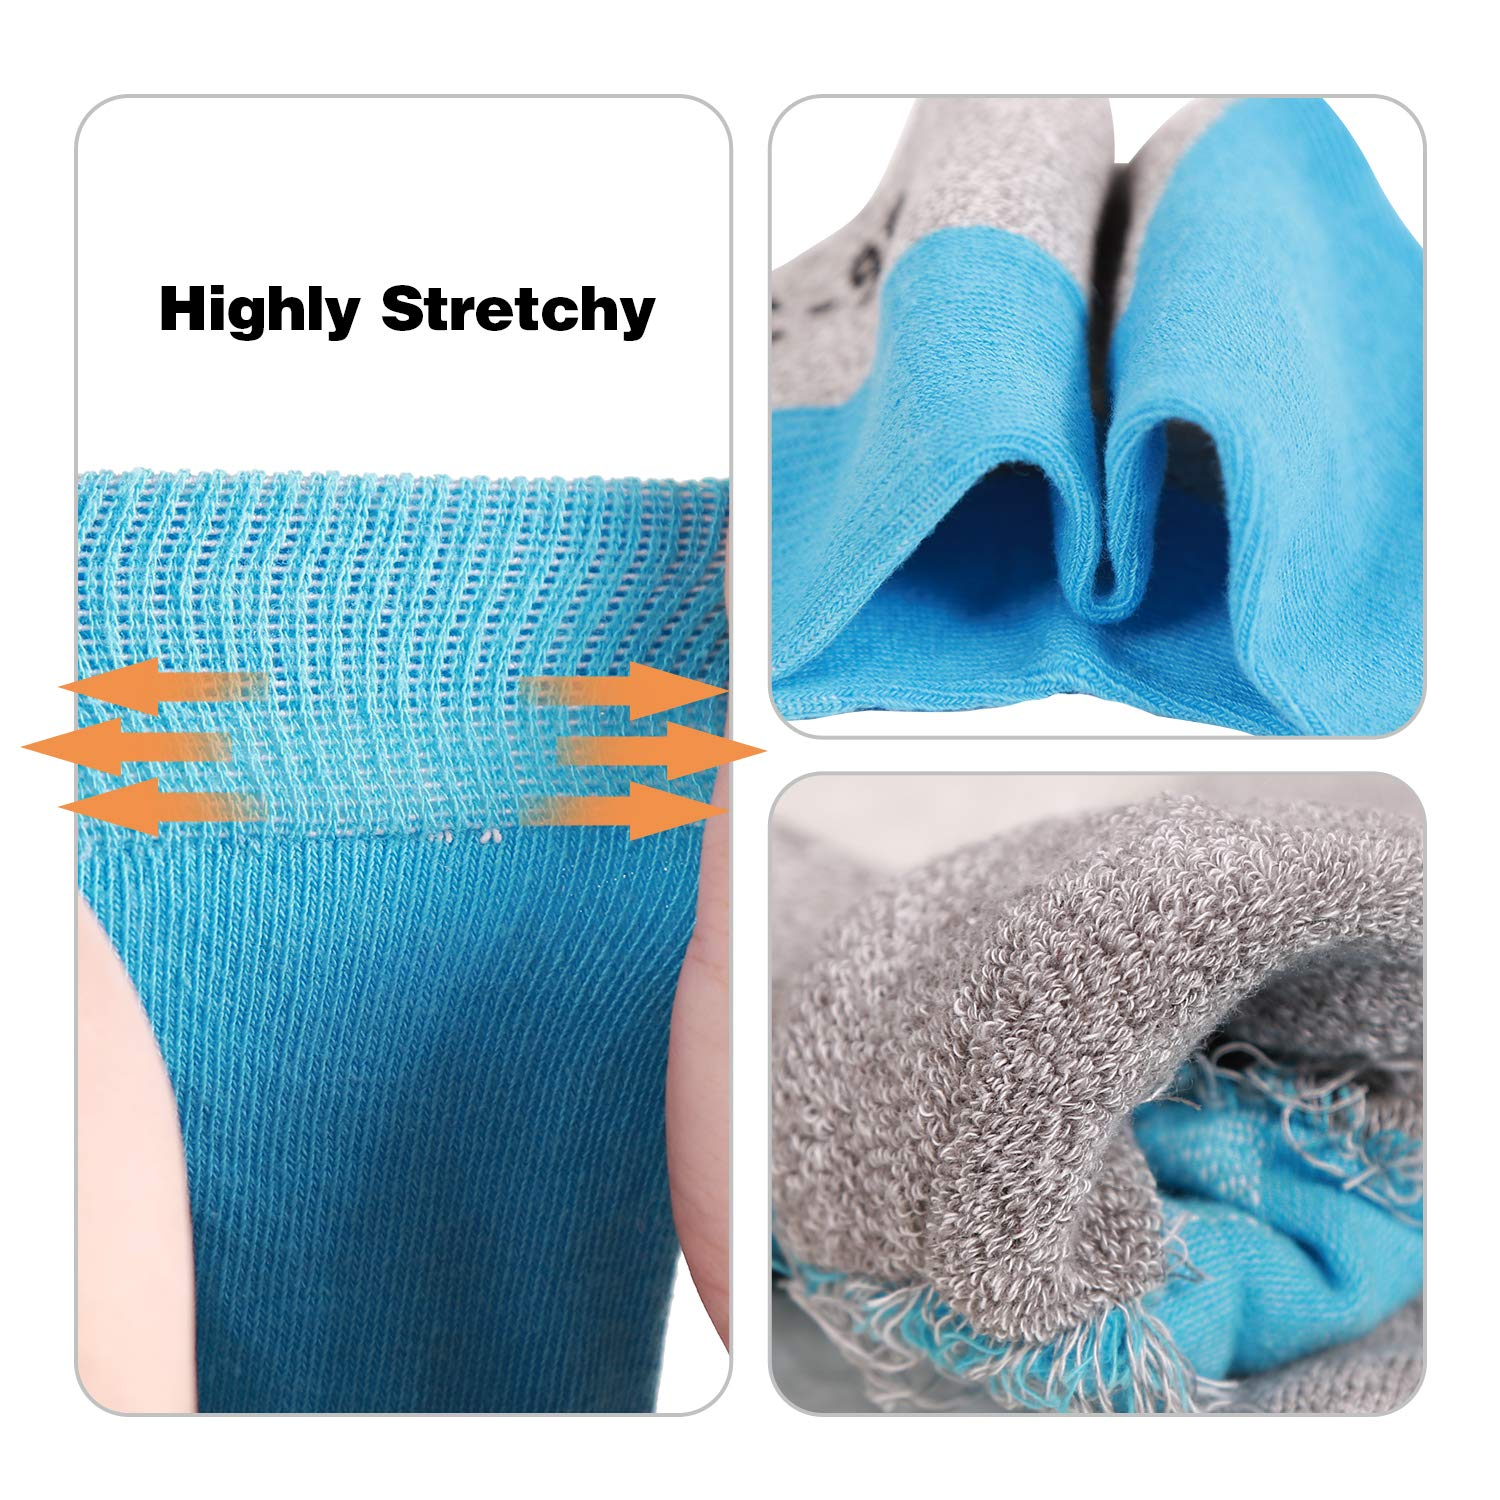 REDCAMP Womens Hiking Socks 5 Pairs Performance Wicking Cushion Cotton Moisture Athletic Crew Socks for Trekking Sports Outdoor Camping Hiking